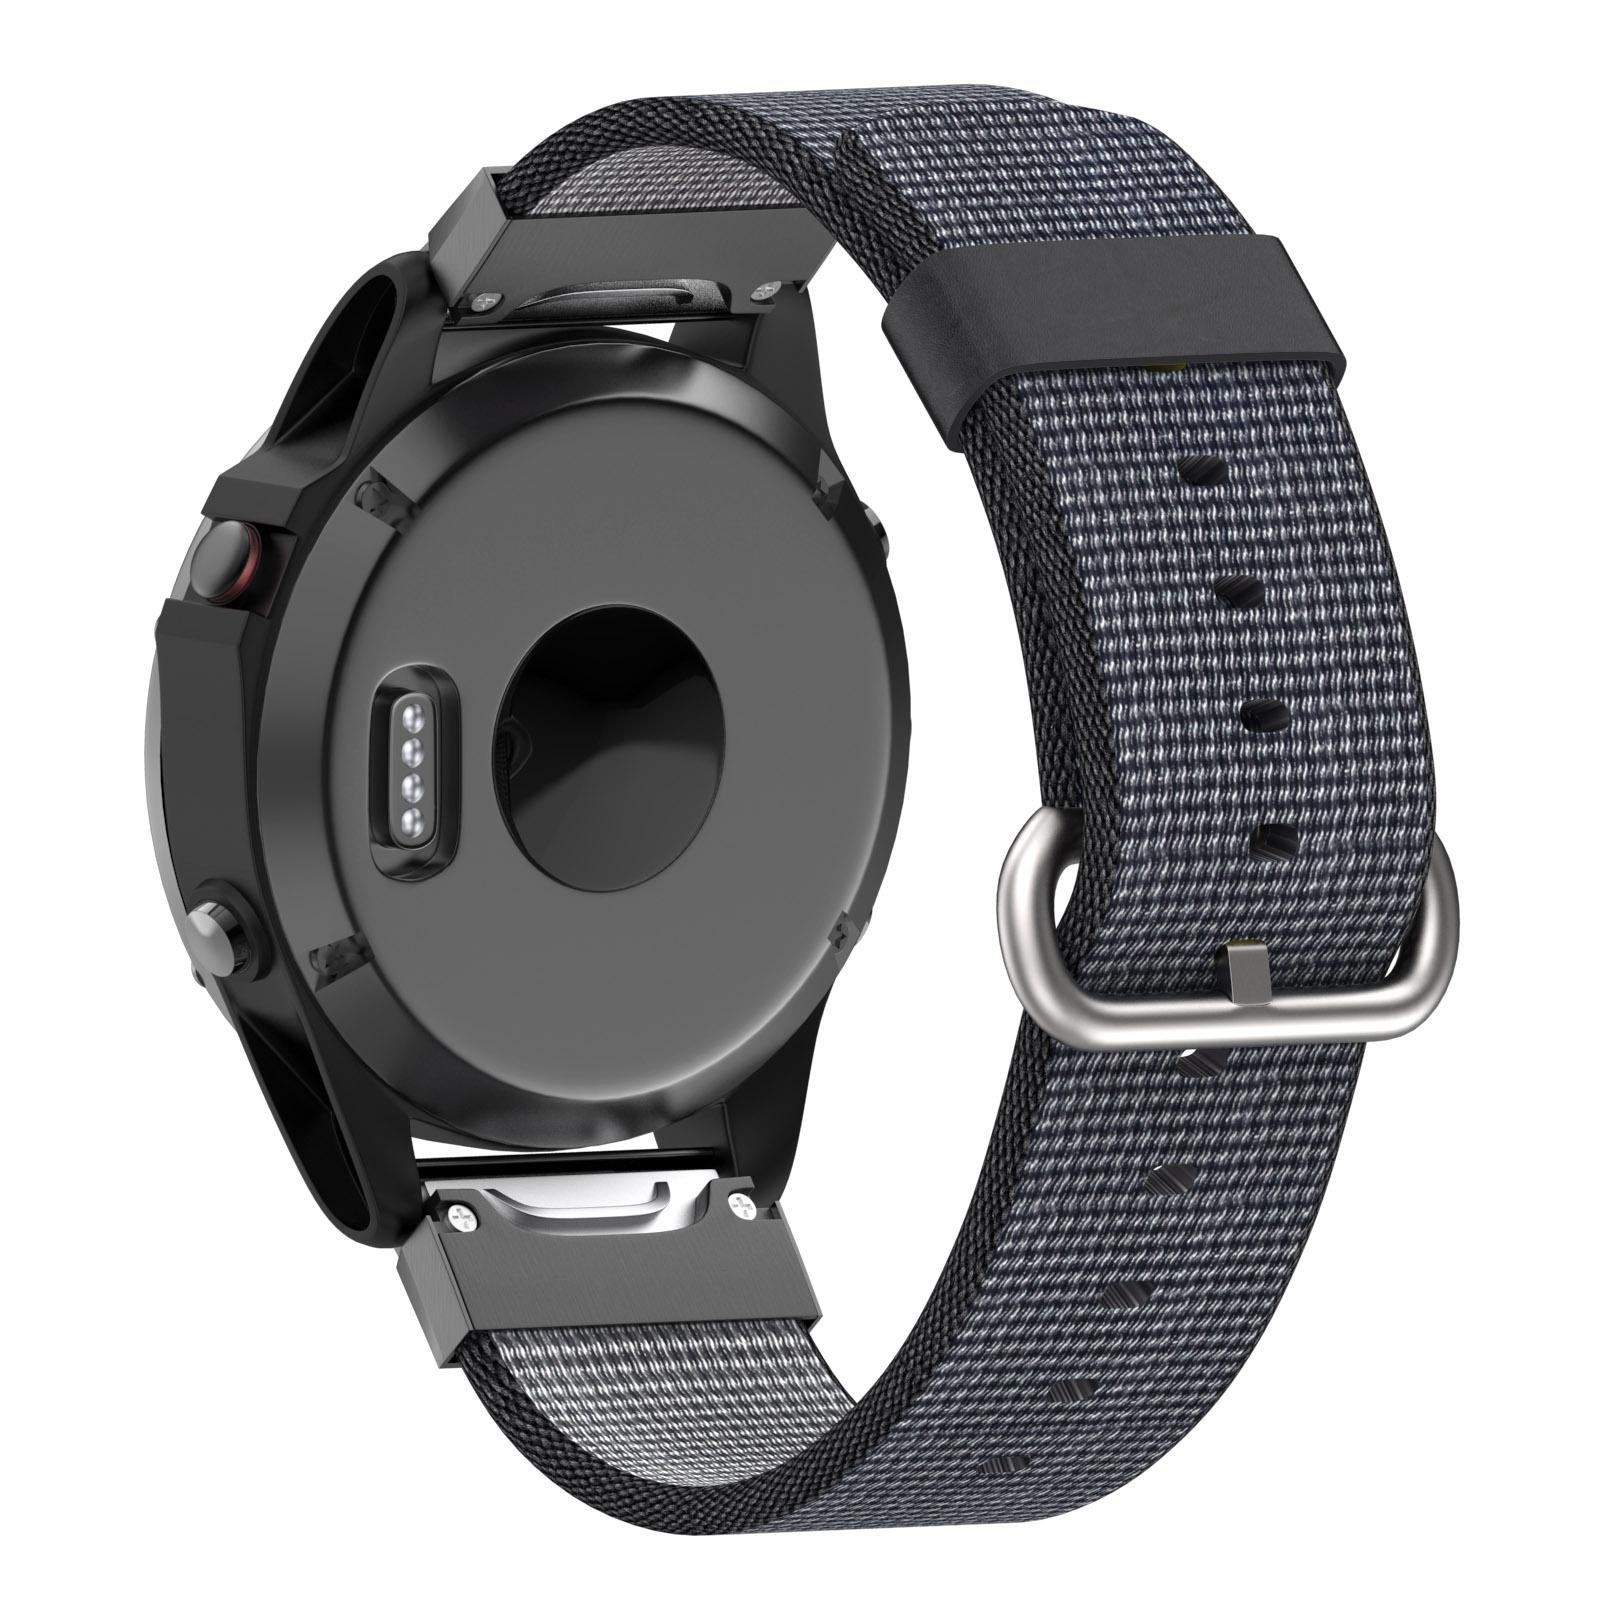 Yooside 22mm Replacement Watch Band Belt Nylon Belt Quick Release easy fit Connector for Garmin Fenix 5/Forerunner 935/Approach S60 (Gray)